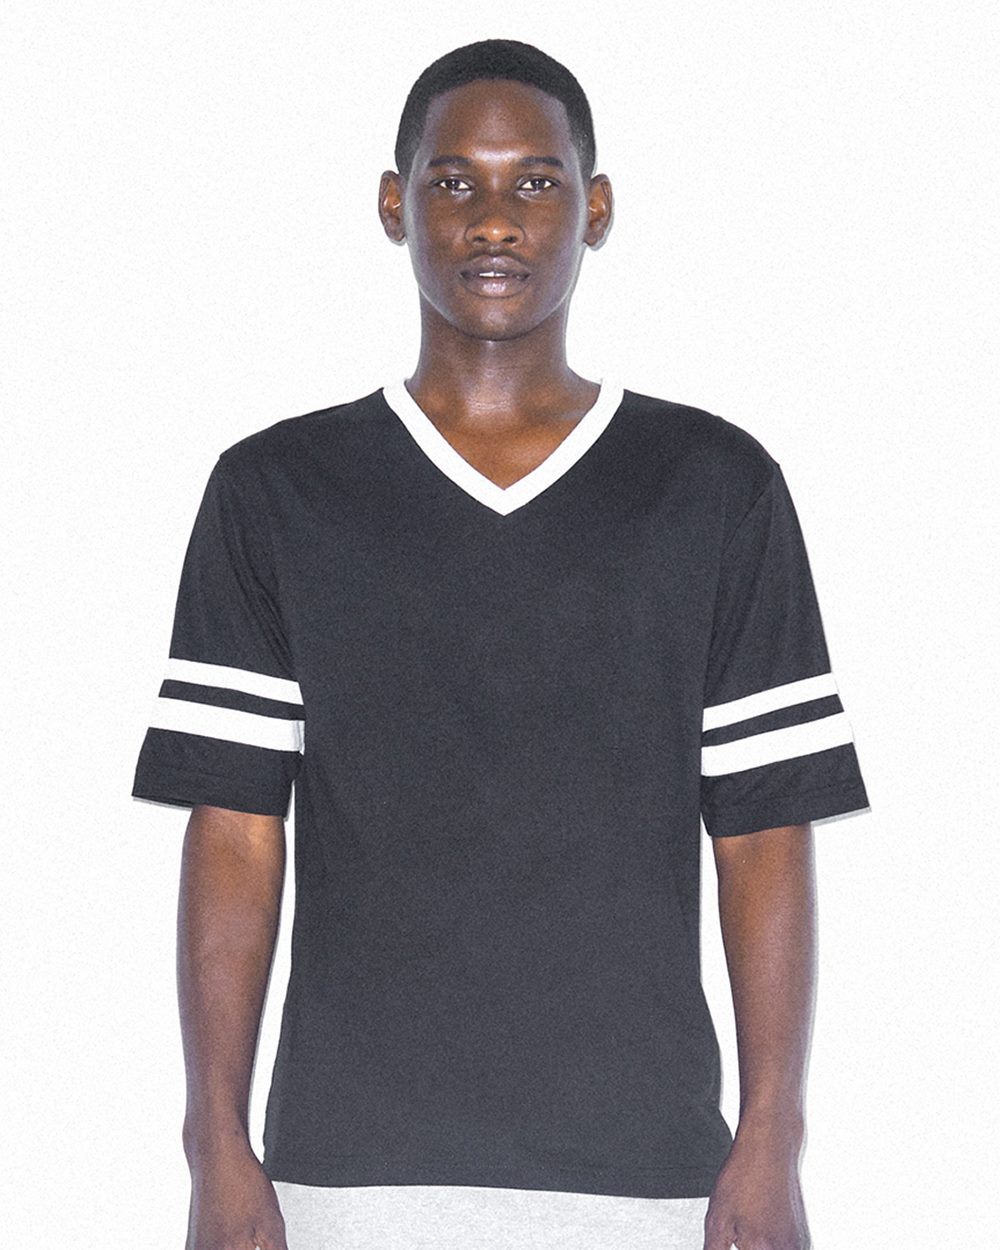 American Apparel Unisex Poly/Cotton V-Neck Football T-Shirt